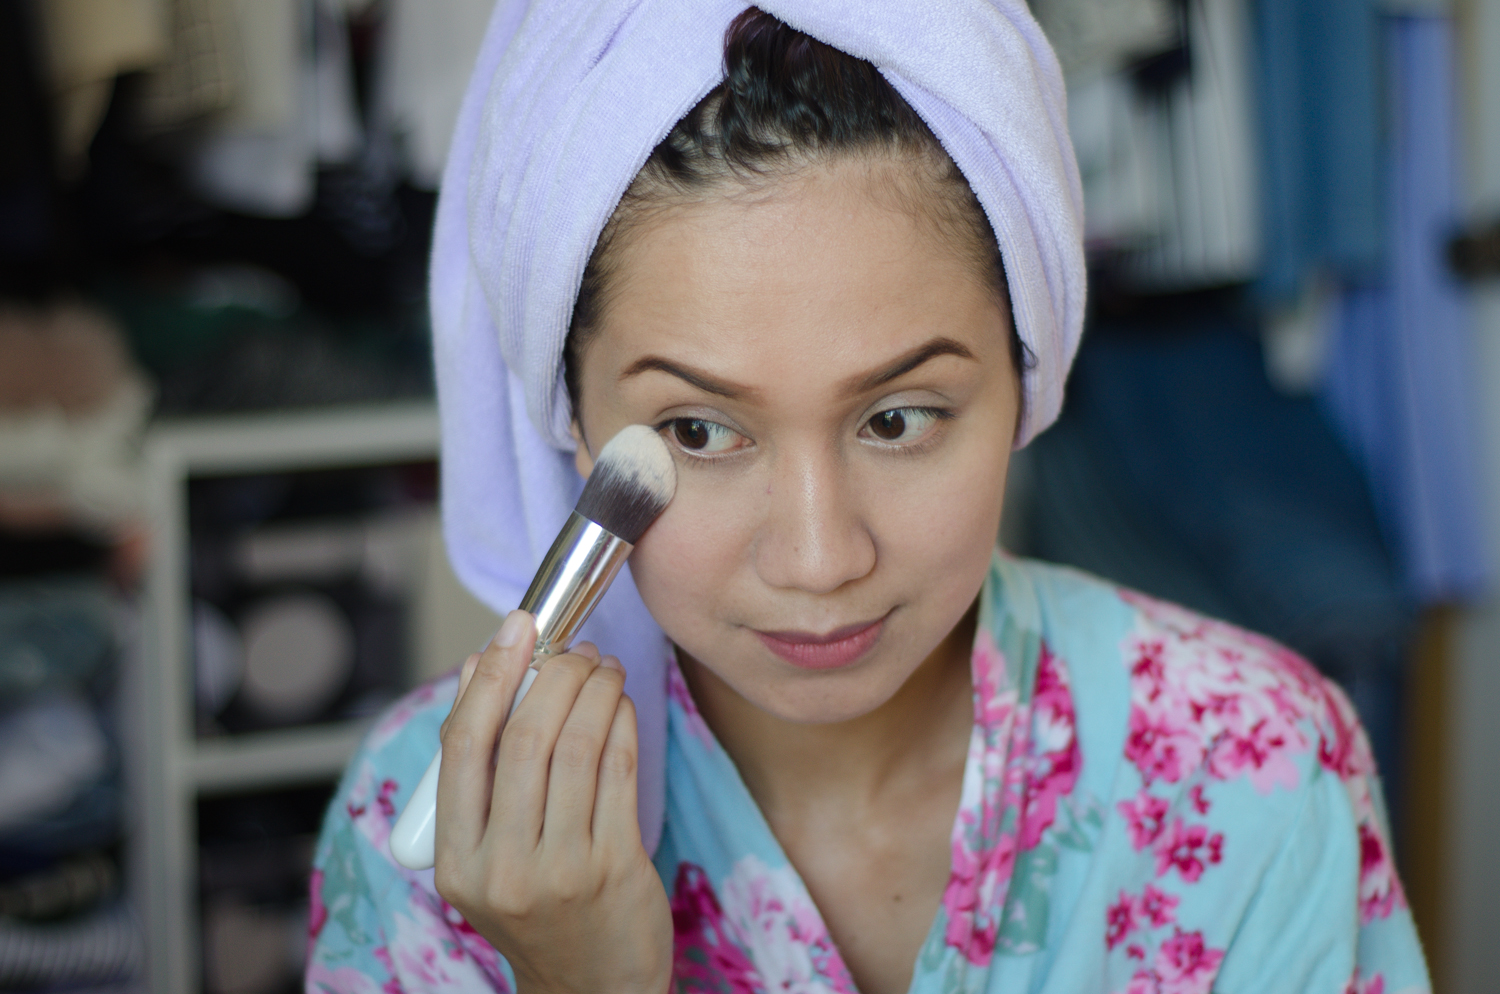 Beauty, Blog, Reviews, Beauty Reviews, Makeup Haul, How to Use Naturactor Cover Face Concealer, Silky Lucent Loose Powder, Philippine Beauty Blogger, Cebu Beauty Blogger, Makeup, Tutorial, Cebu Fashion Blogger, Cebu Blogger, Asian, Let's Stylize Cosmetics, Toni Pino-Oca